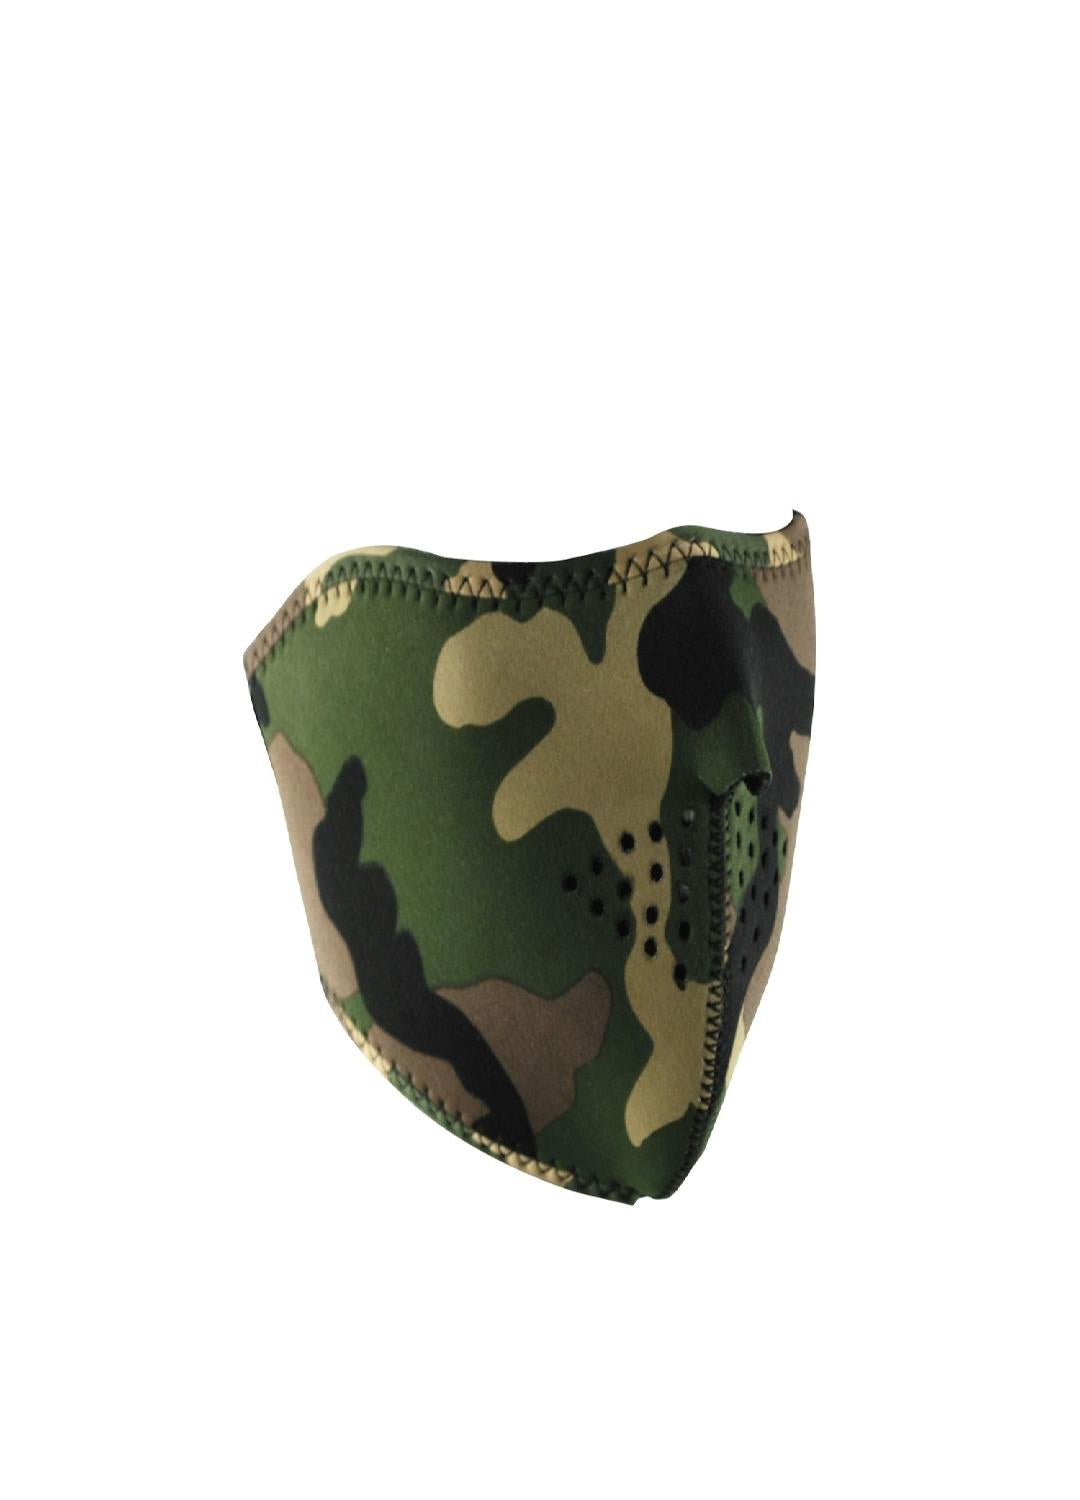 ZanHeadgear Reversible Half Mask Camo to High-Vis Orange